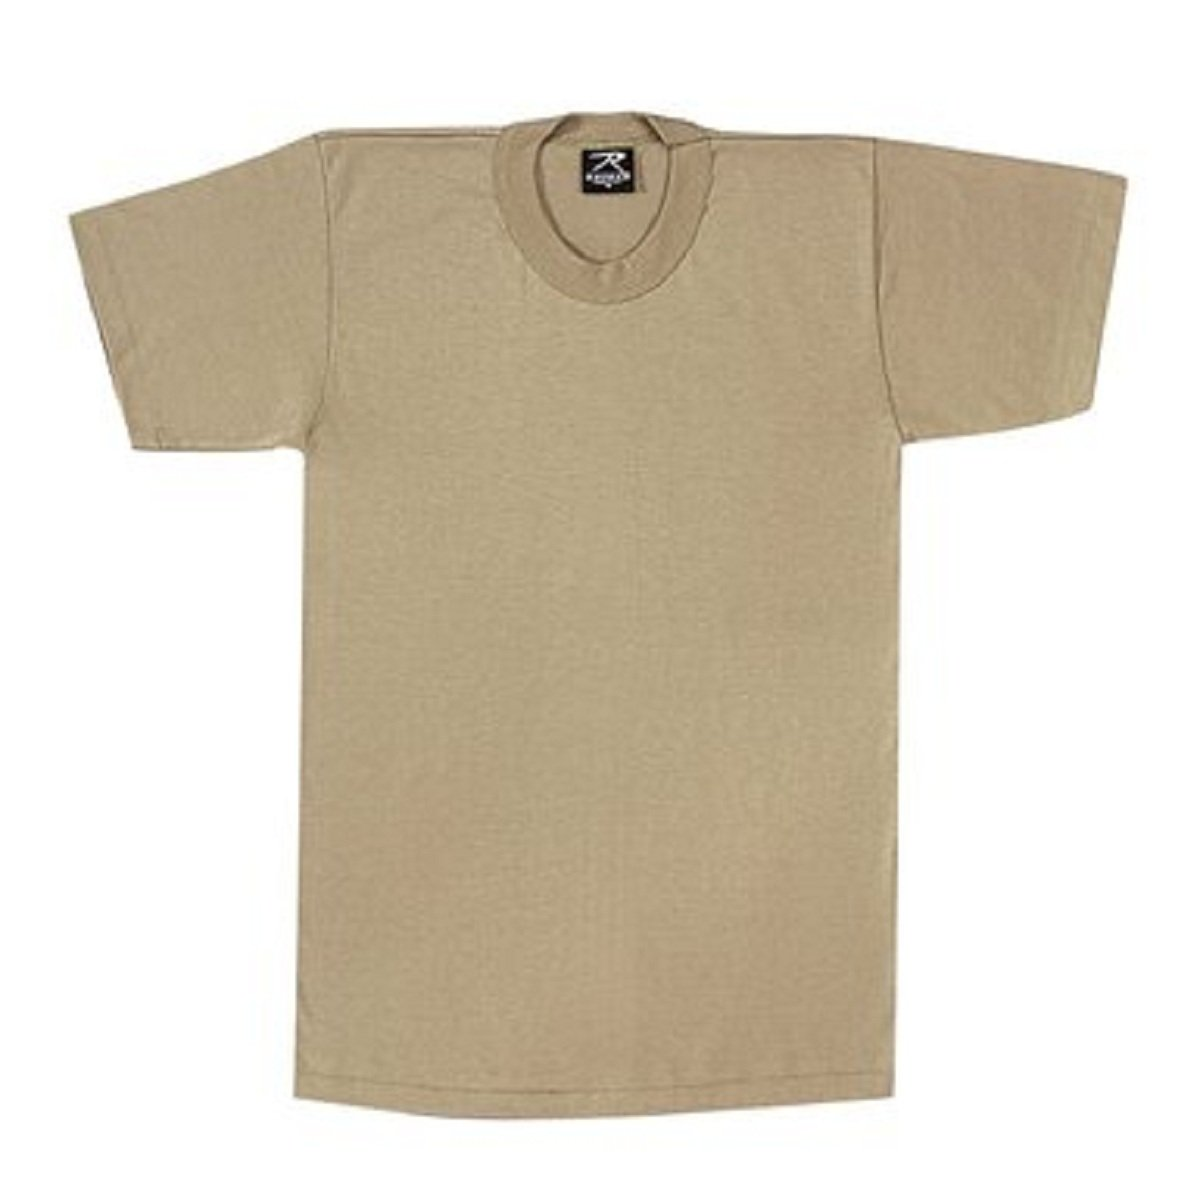 Amazon.com  8570 100% COTTON DESERT SAND T-SHIRT XLARGE  Military Apparel  Shirts  Clothing a49eee6c3f4